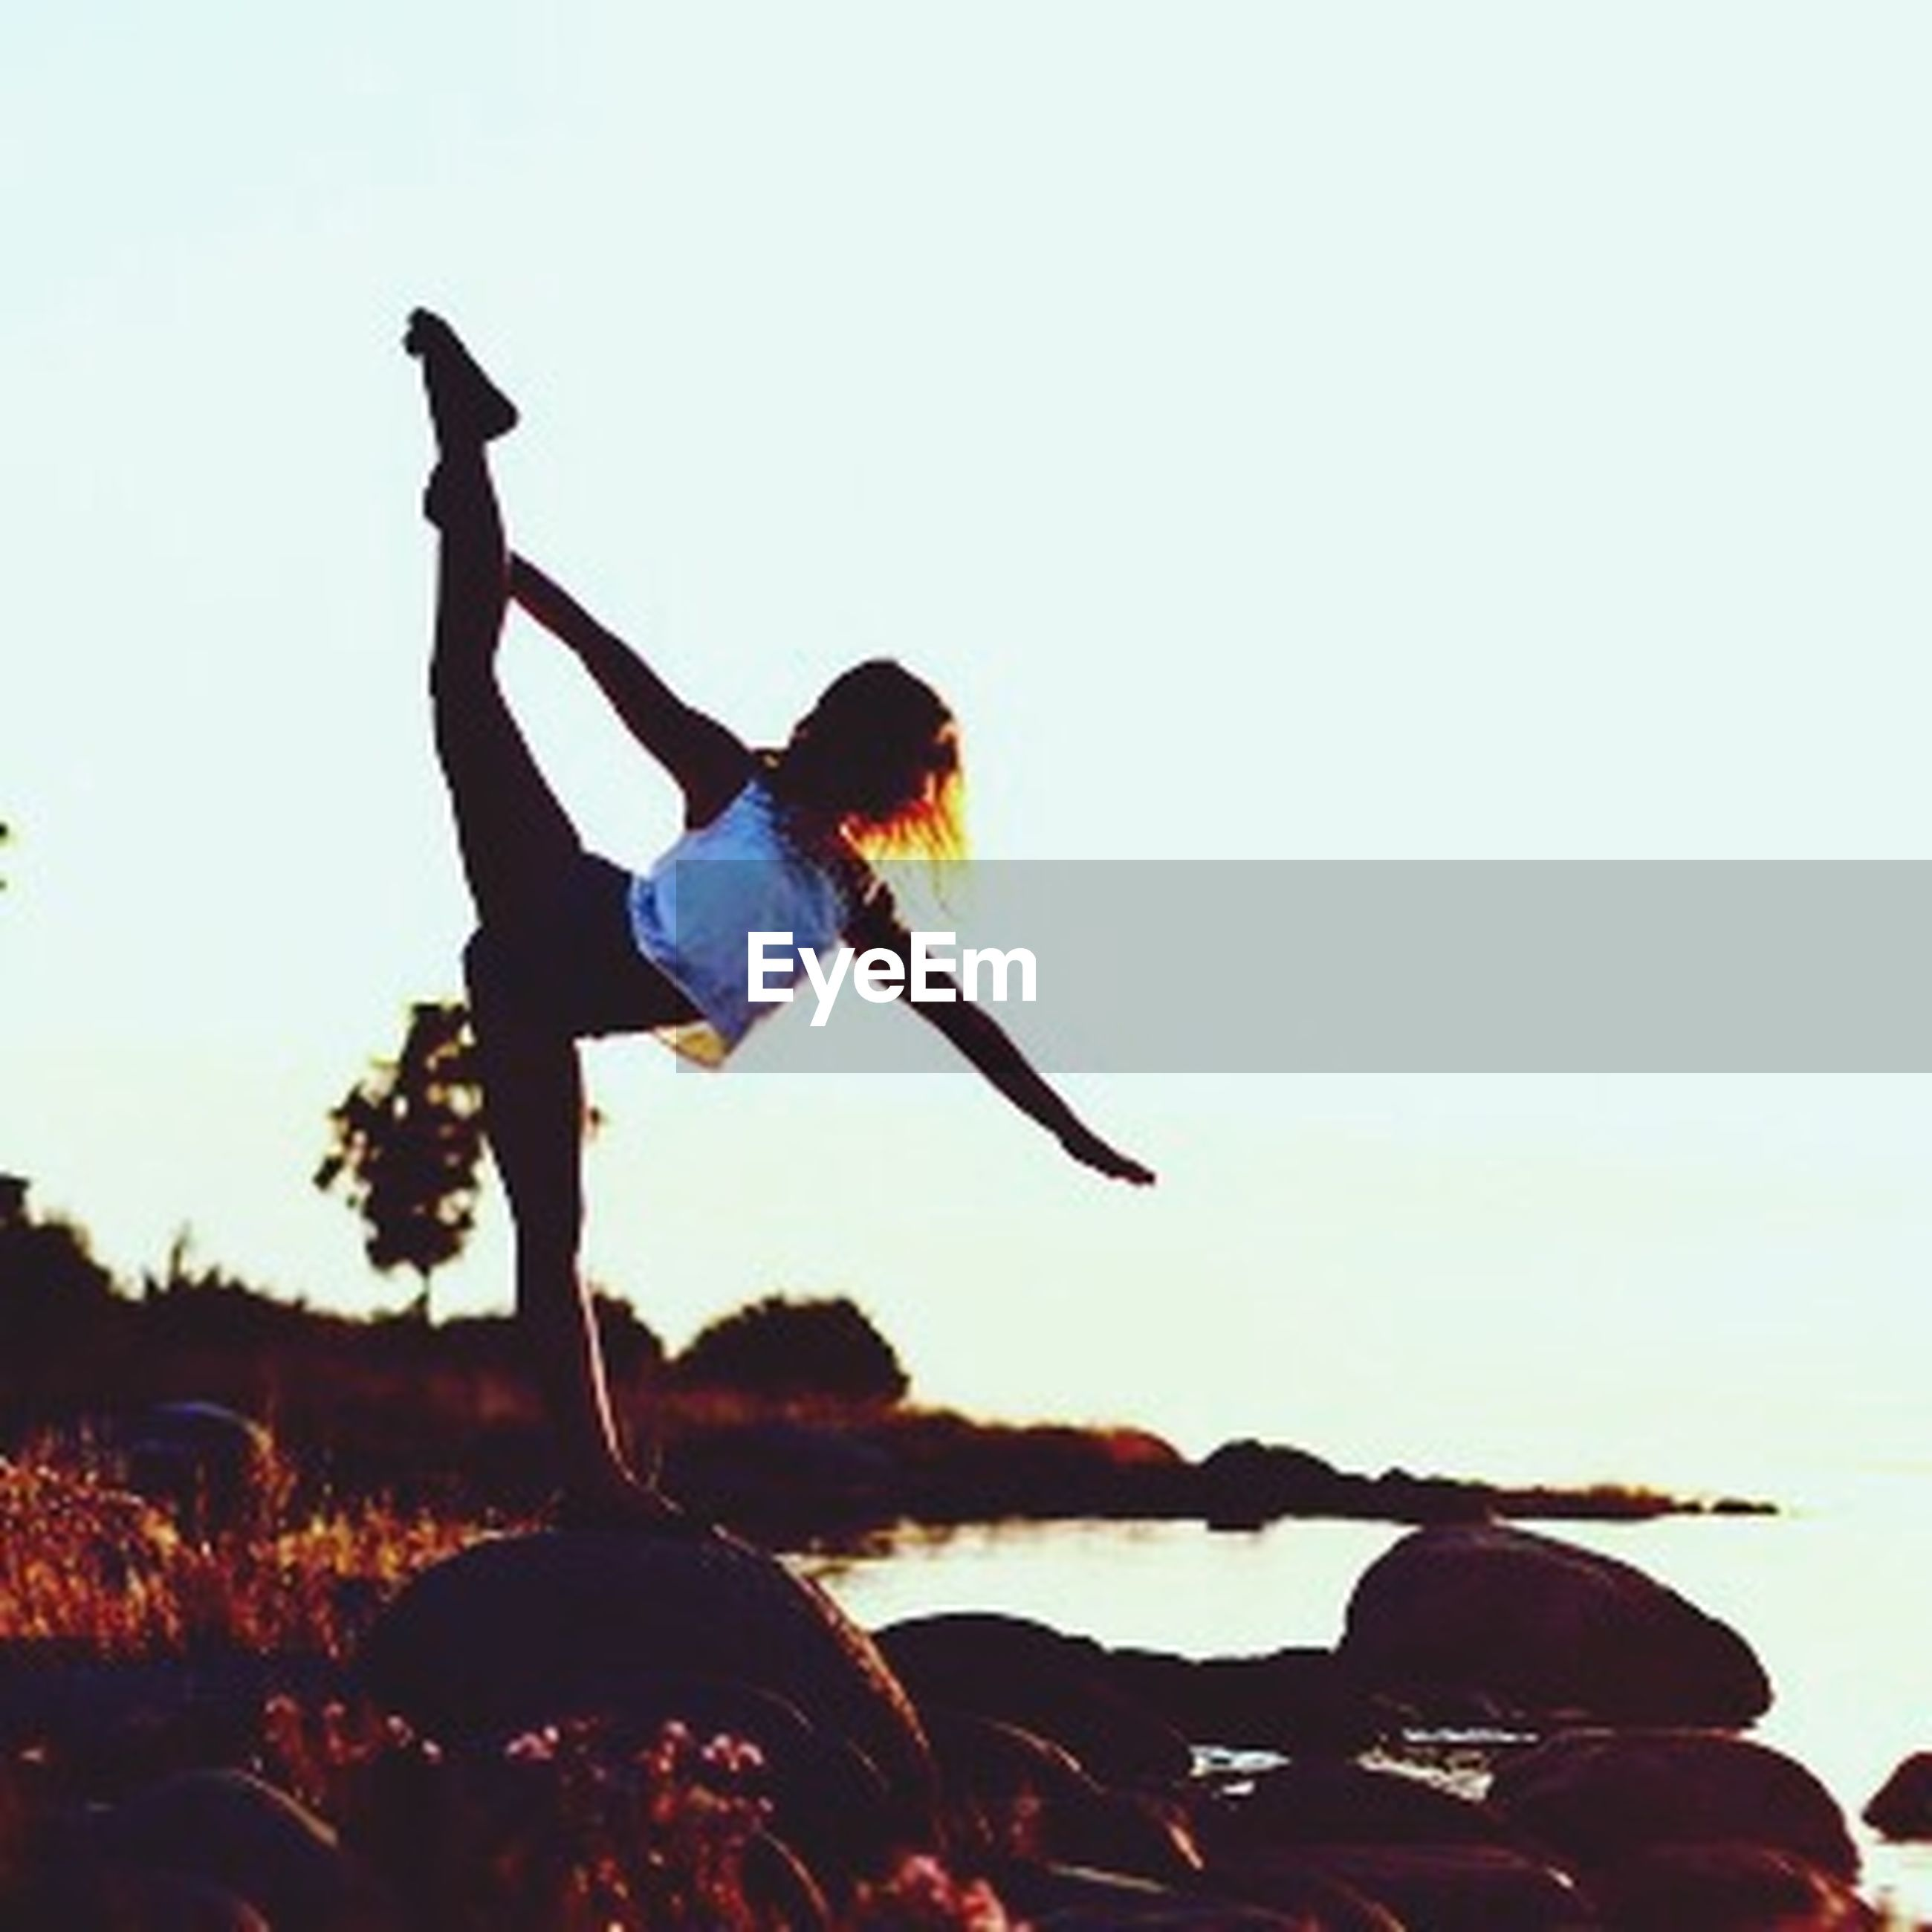 lifestyles, clear sky, leisure activity, full length, copy space, men, mid-air, jumping, sky, side view, silhouette, casual clothing, enjoyment, carefree, arms outstretched, freedom, fun, nature